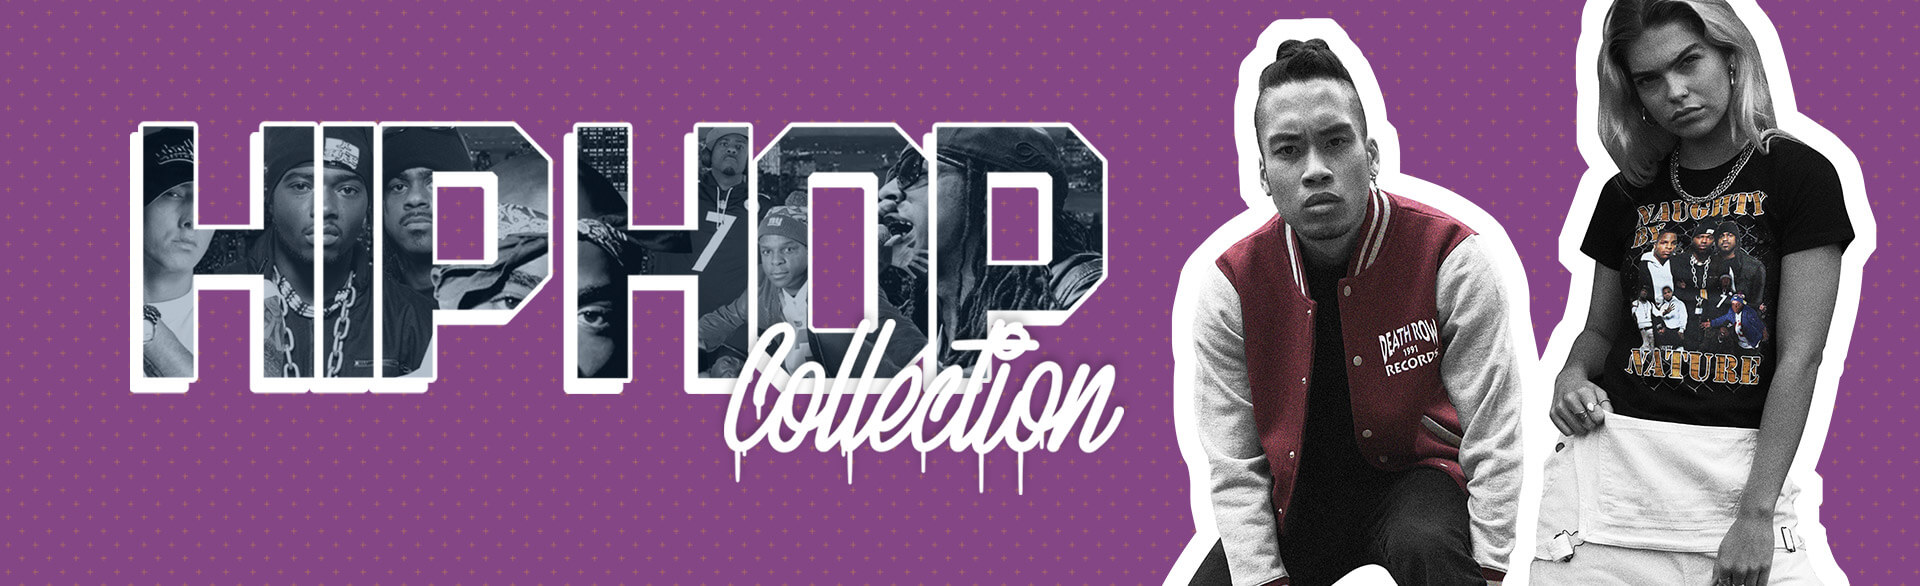 COLLECTION HIP HOP